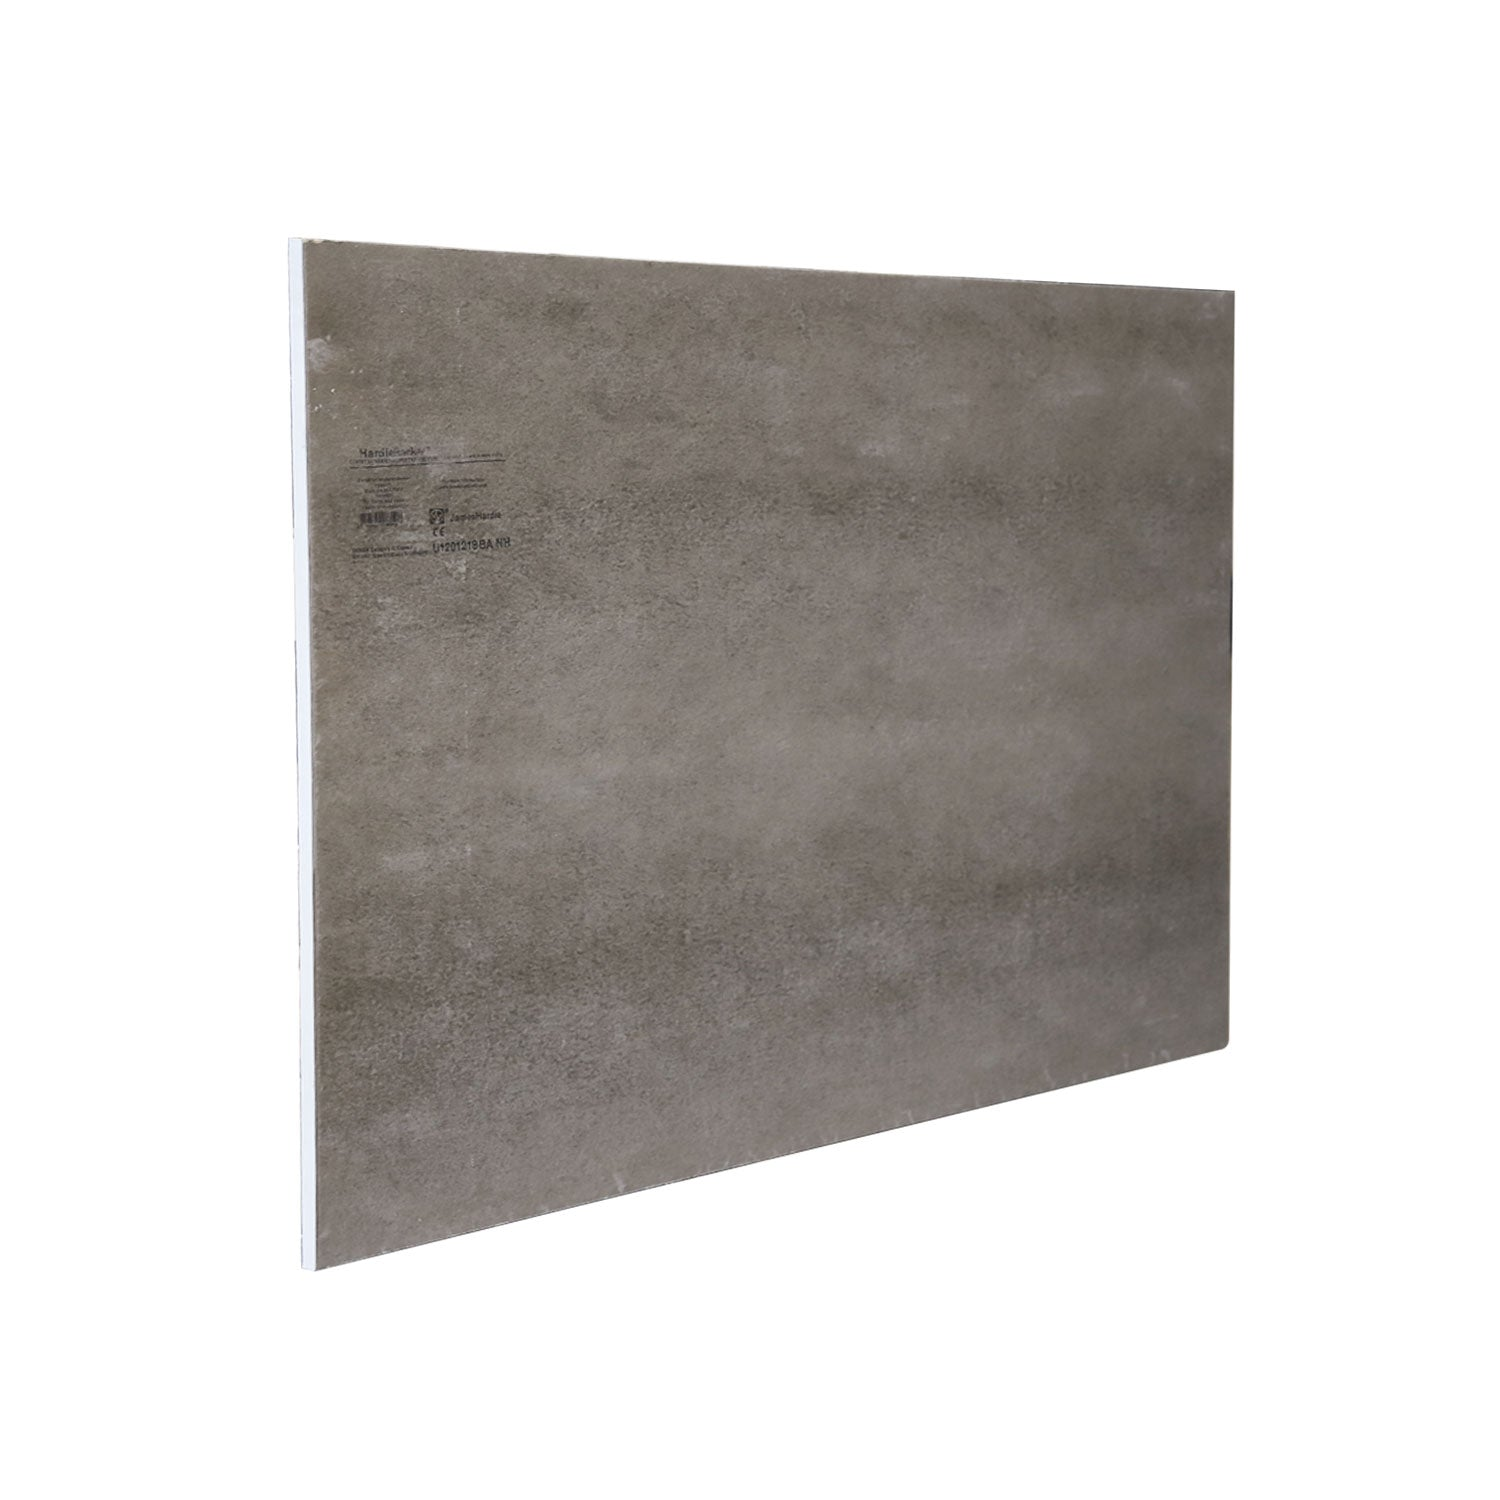 Hardie Backer W/R Tile Backboard 1200 x 800 x 12mm